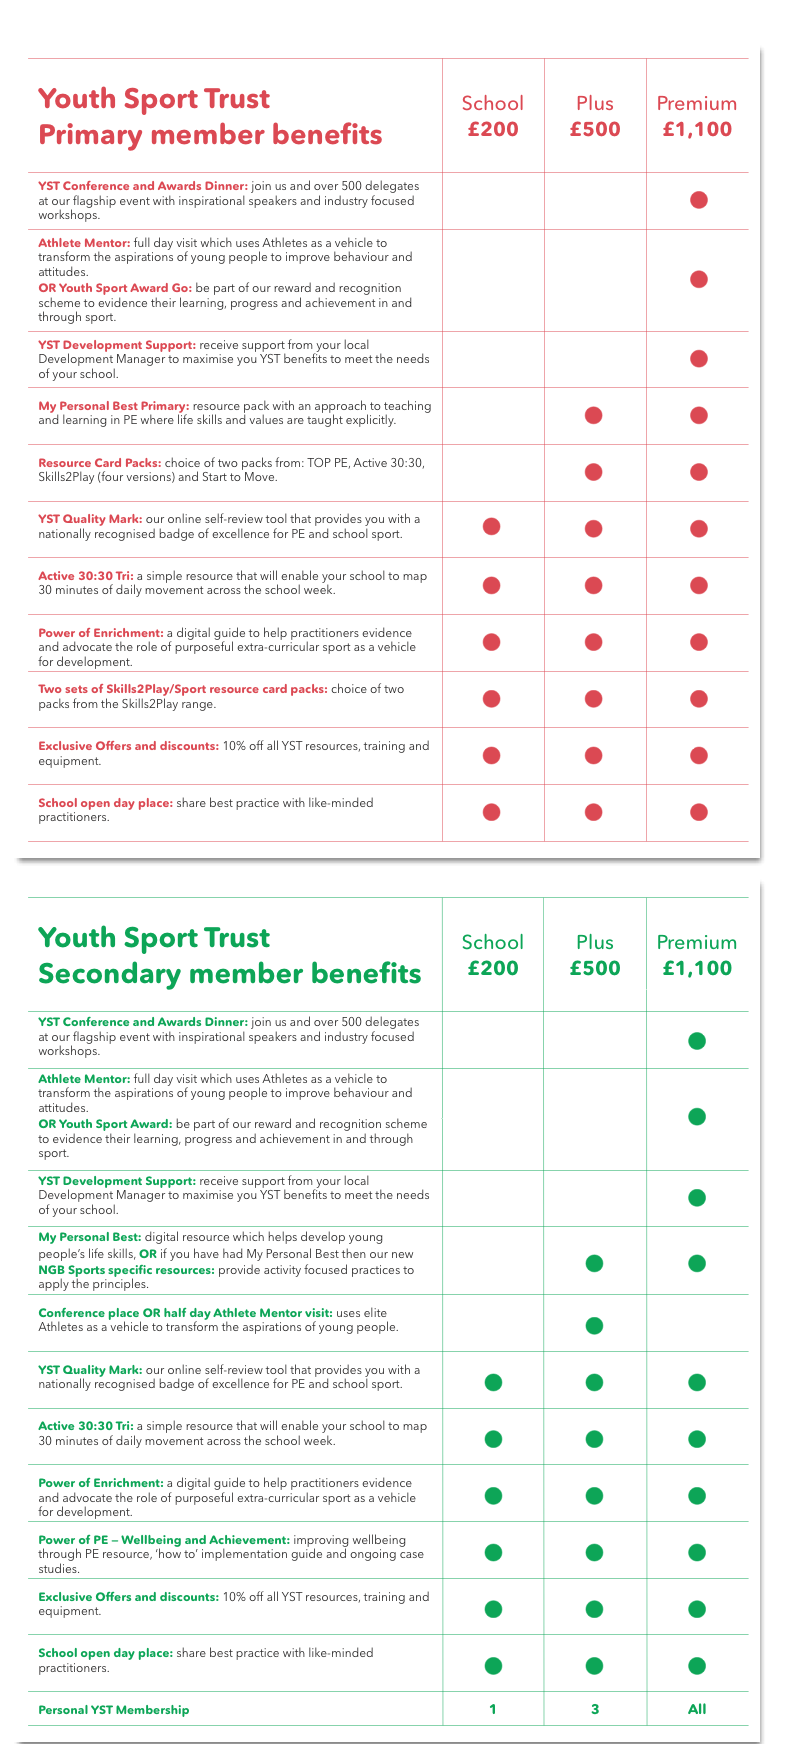 School Membership benefits table